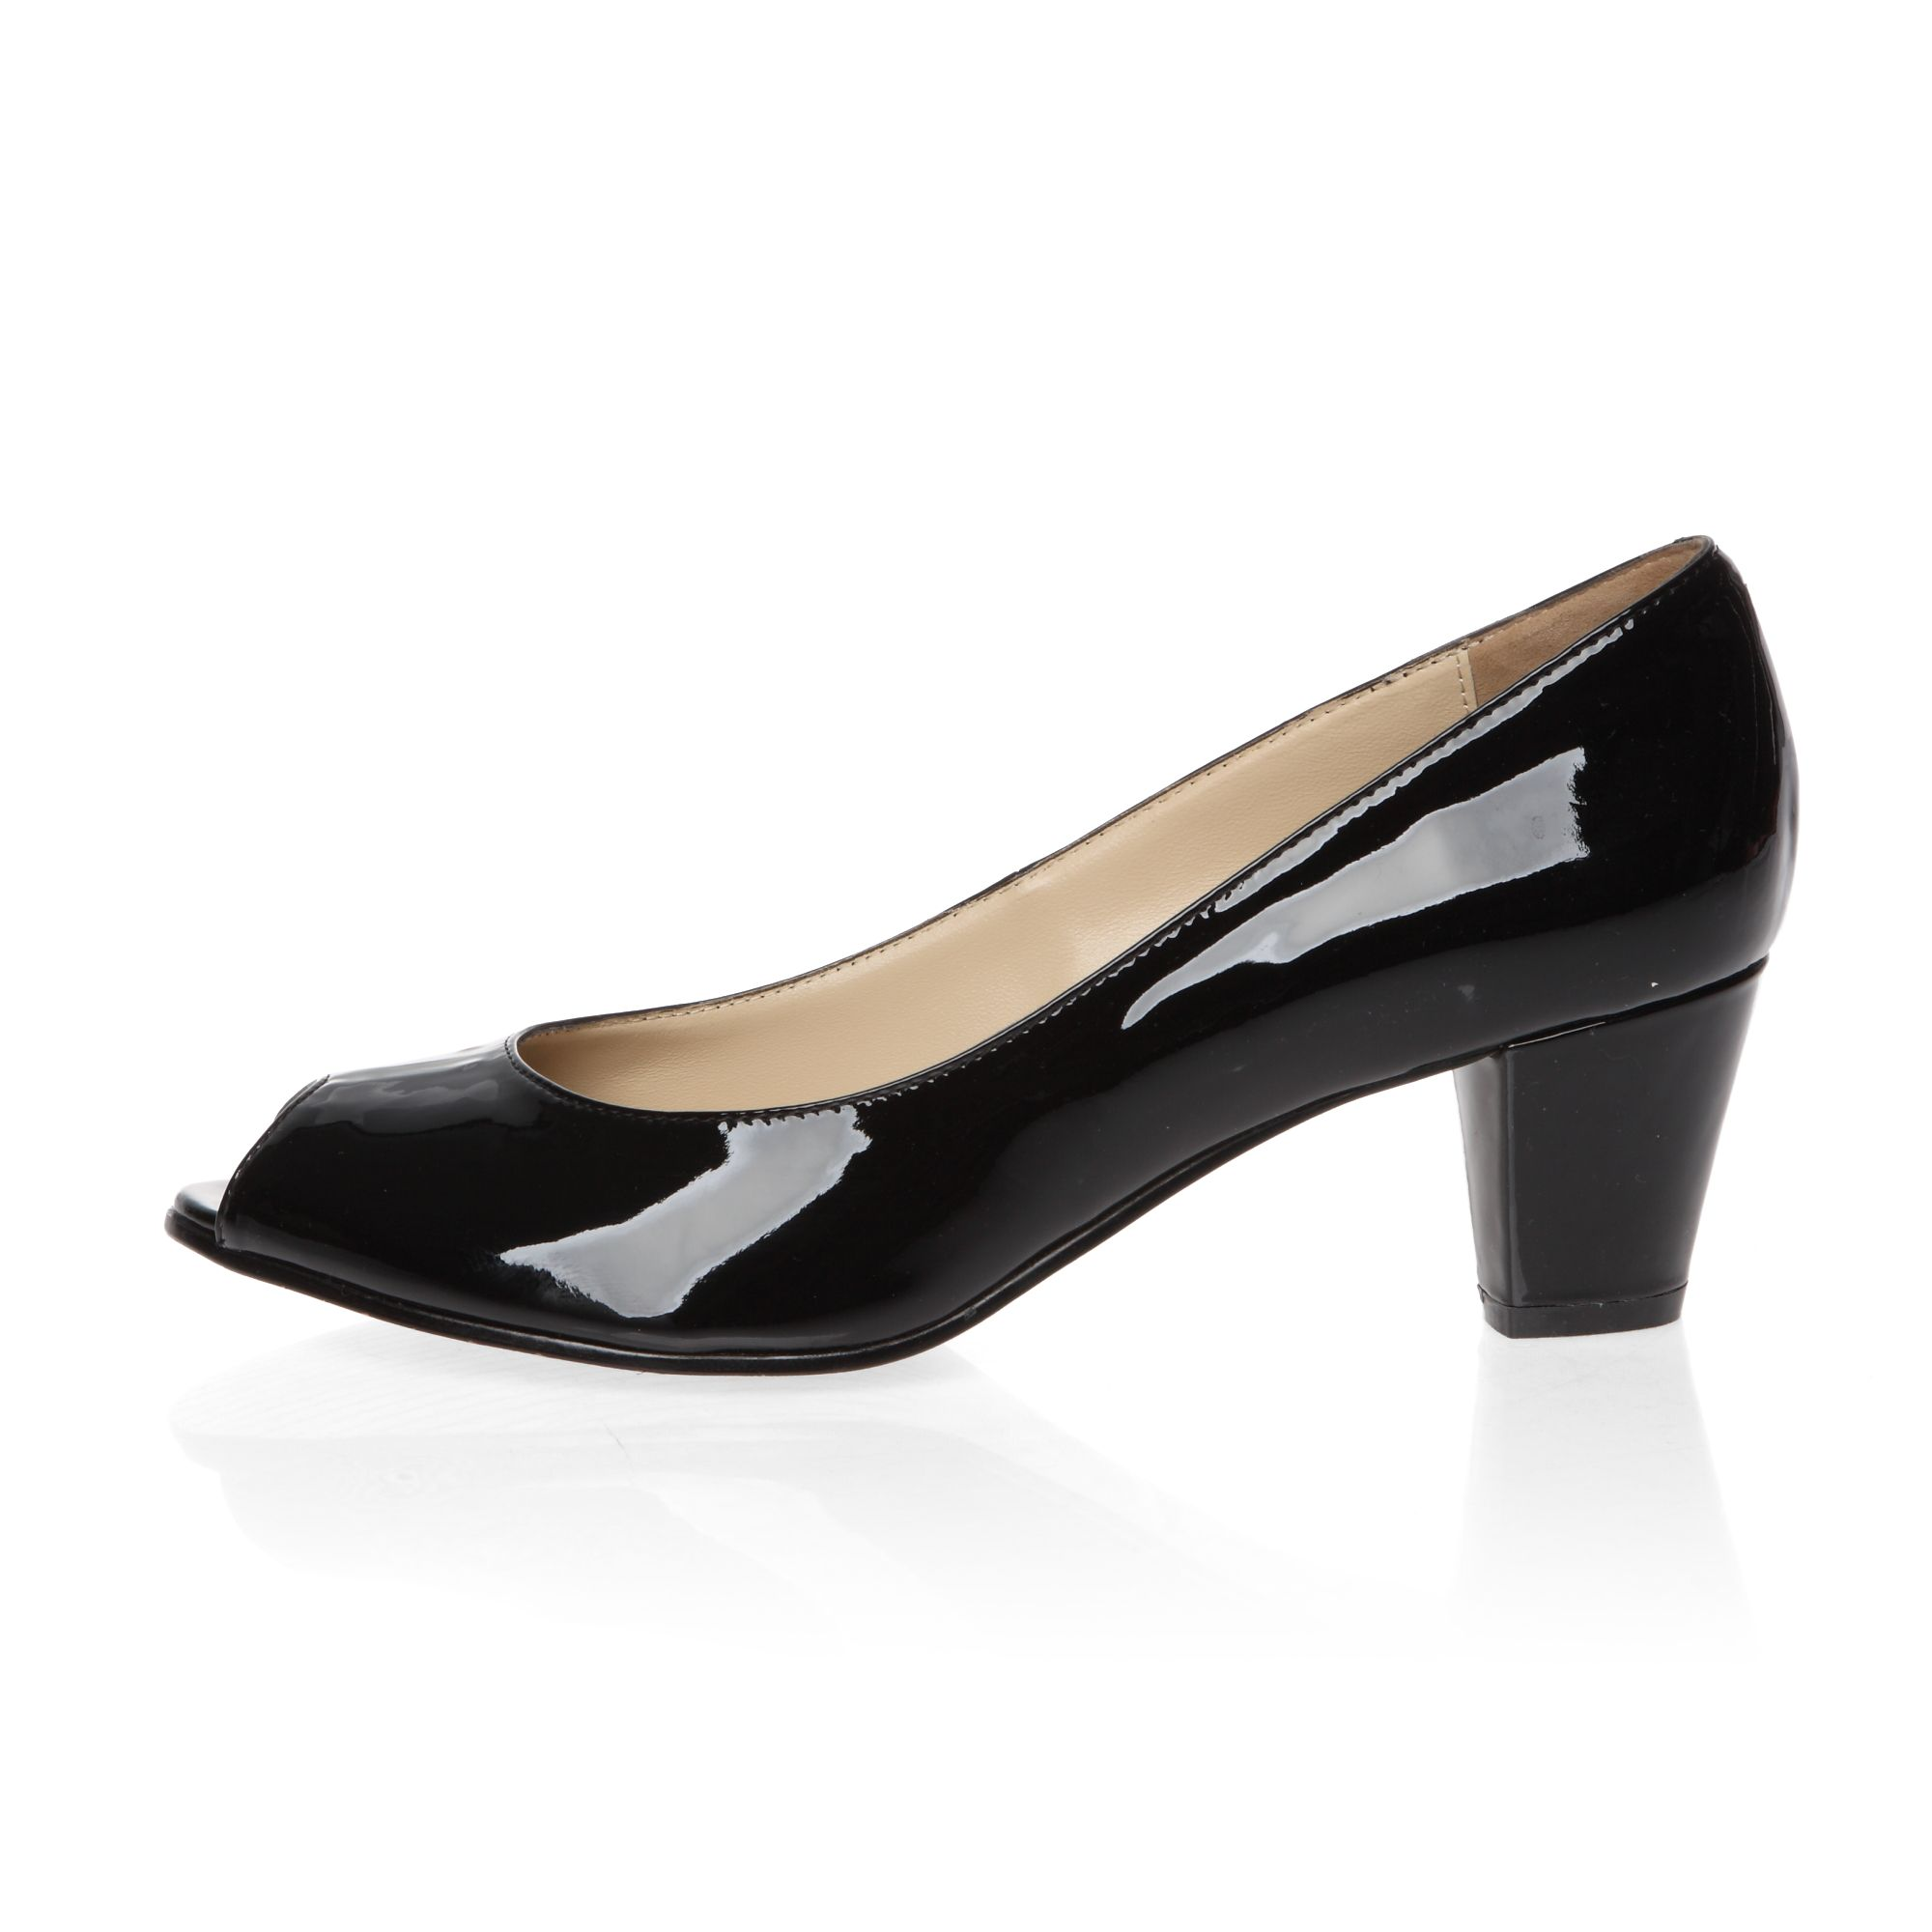 Mid heeled peep toe patent court shoes